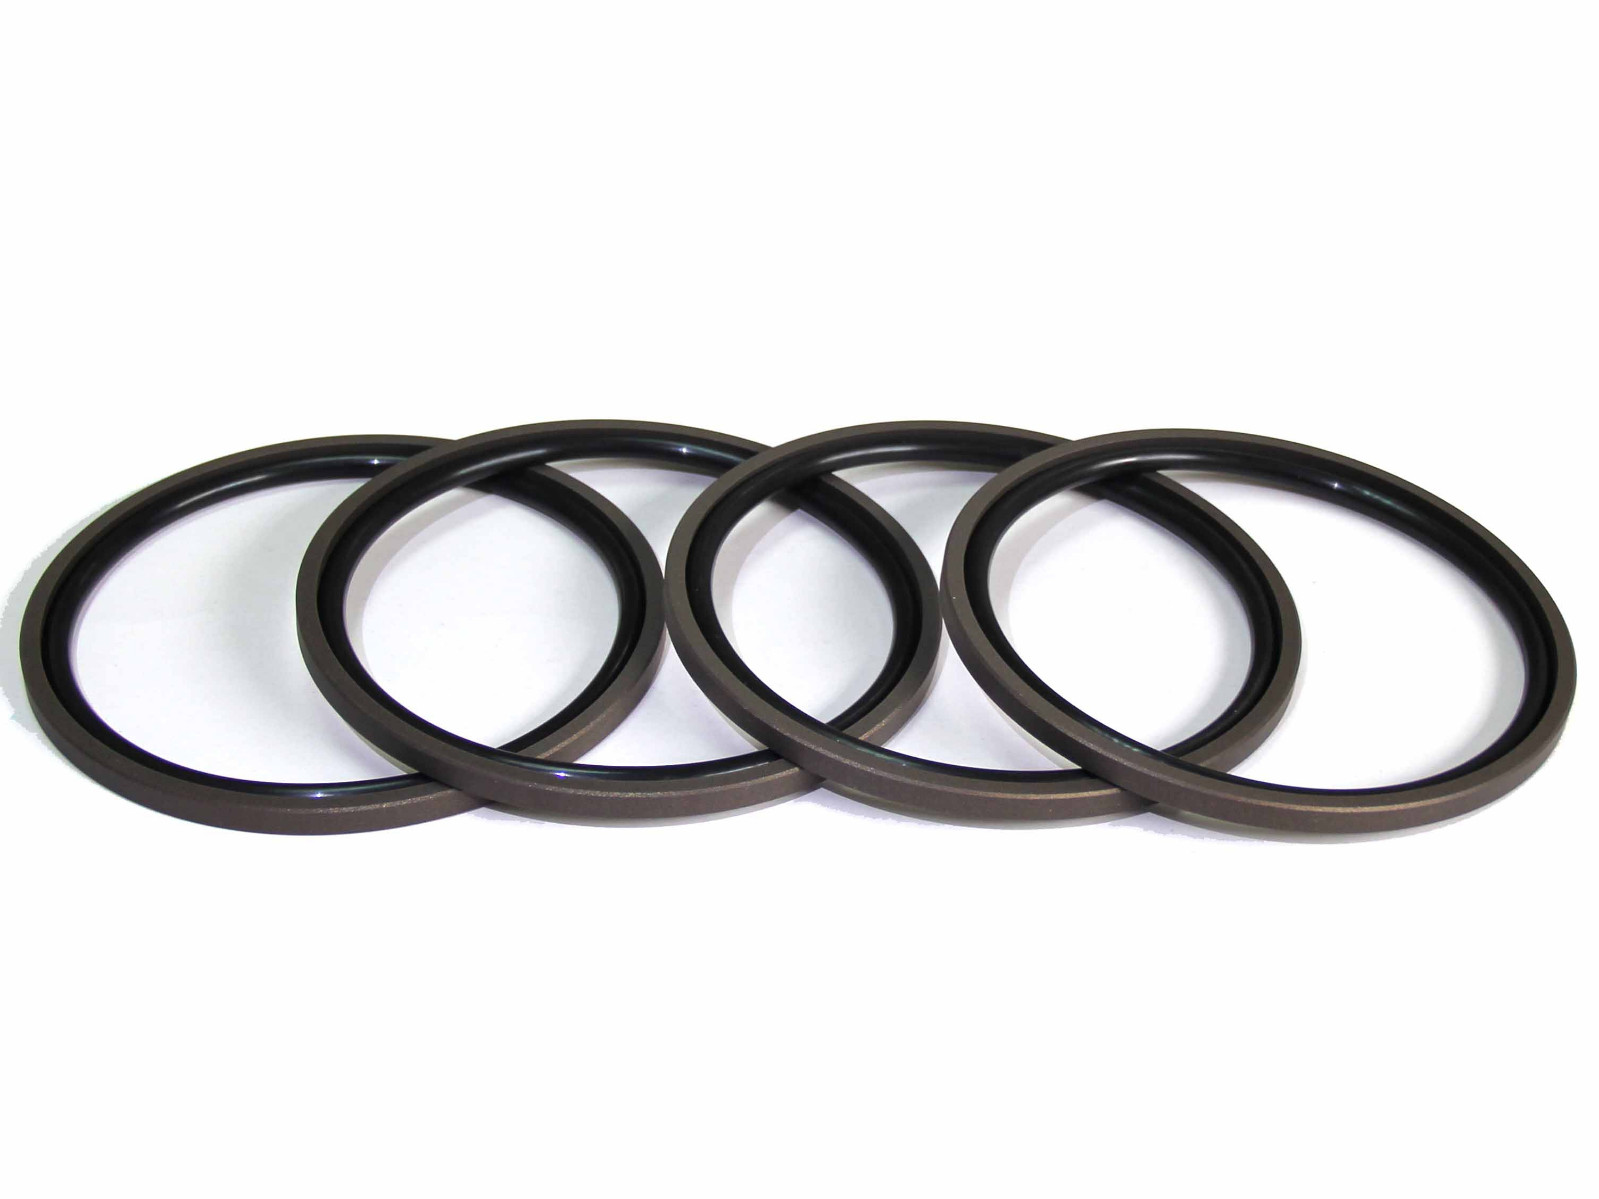 DSH-Piston Seal Design | Piston Seal Bronze Filled PTFE Glyd Ring-8